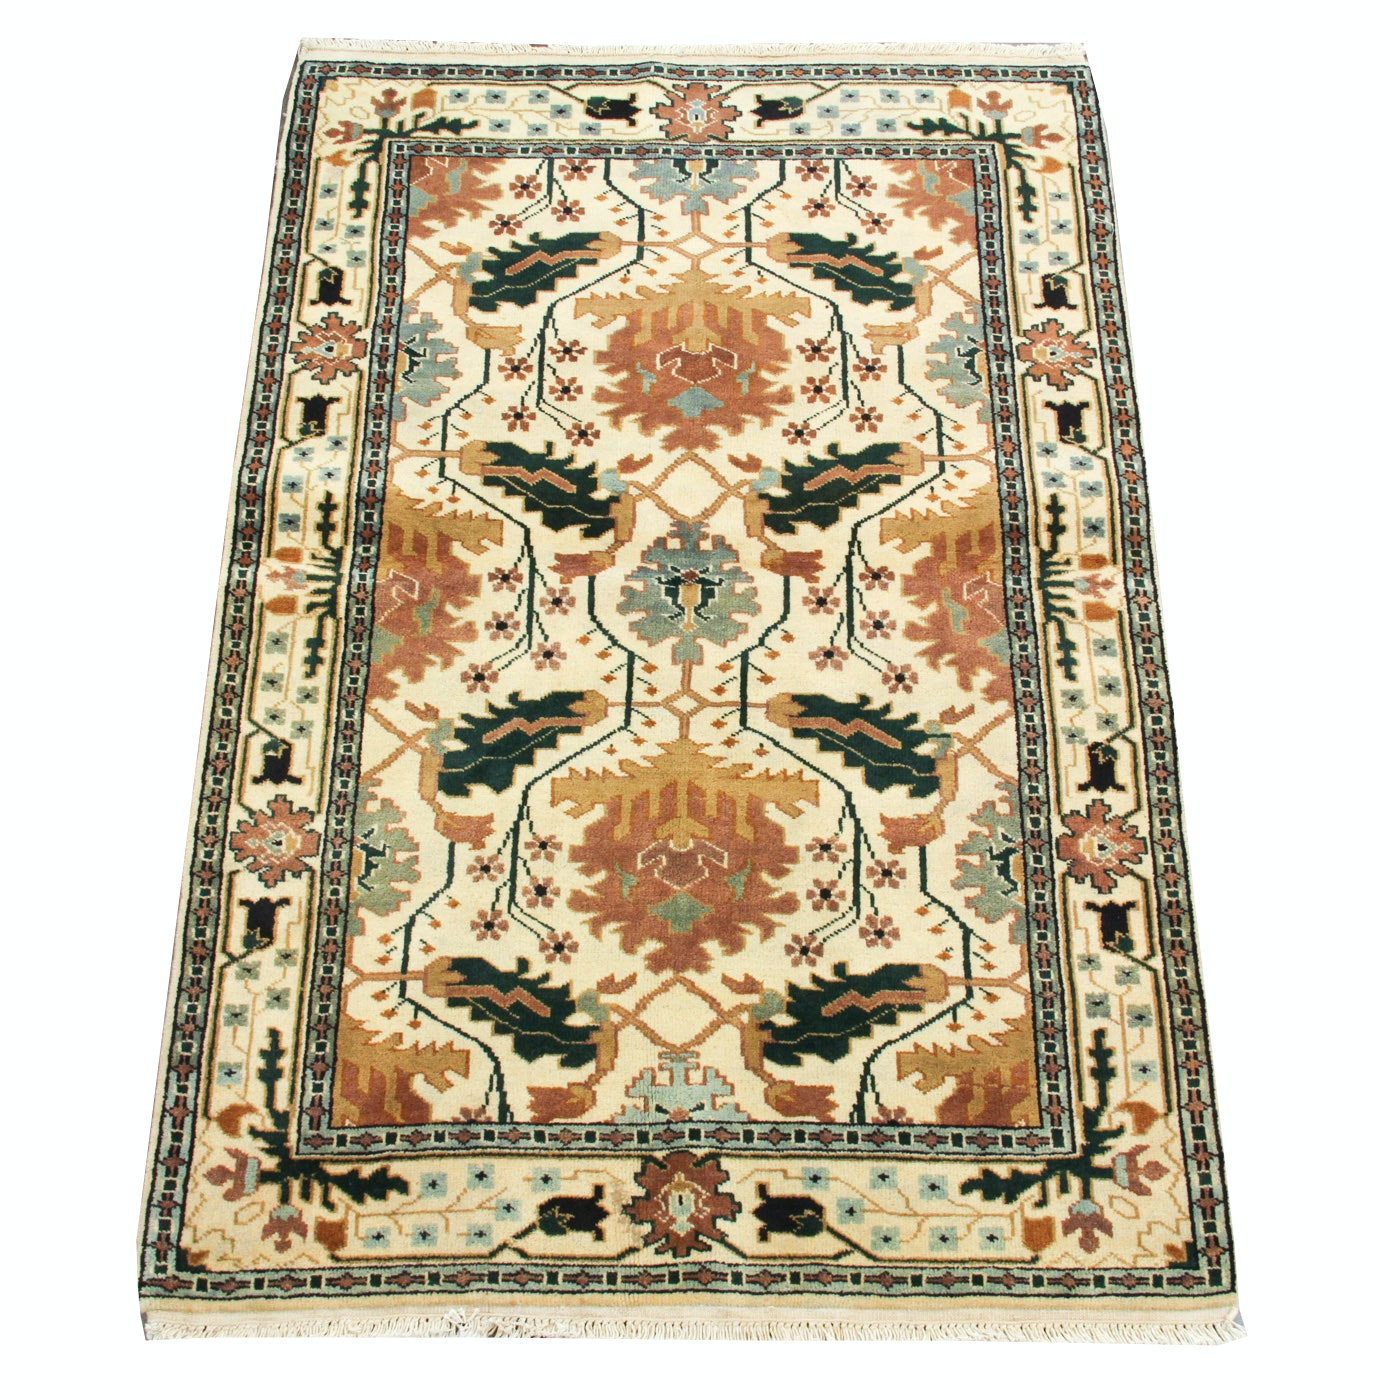 Hand-Knotted Indian Sultanabad Area Rug